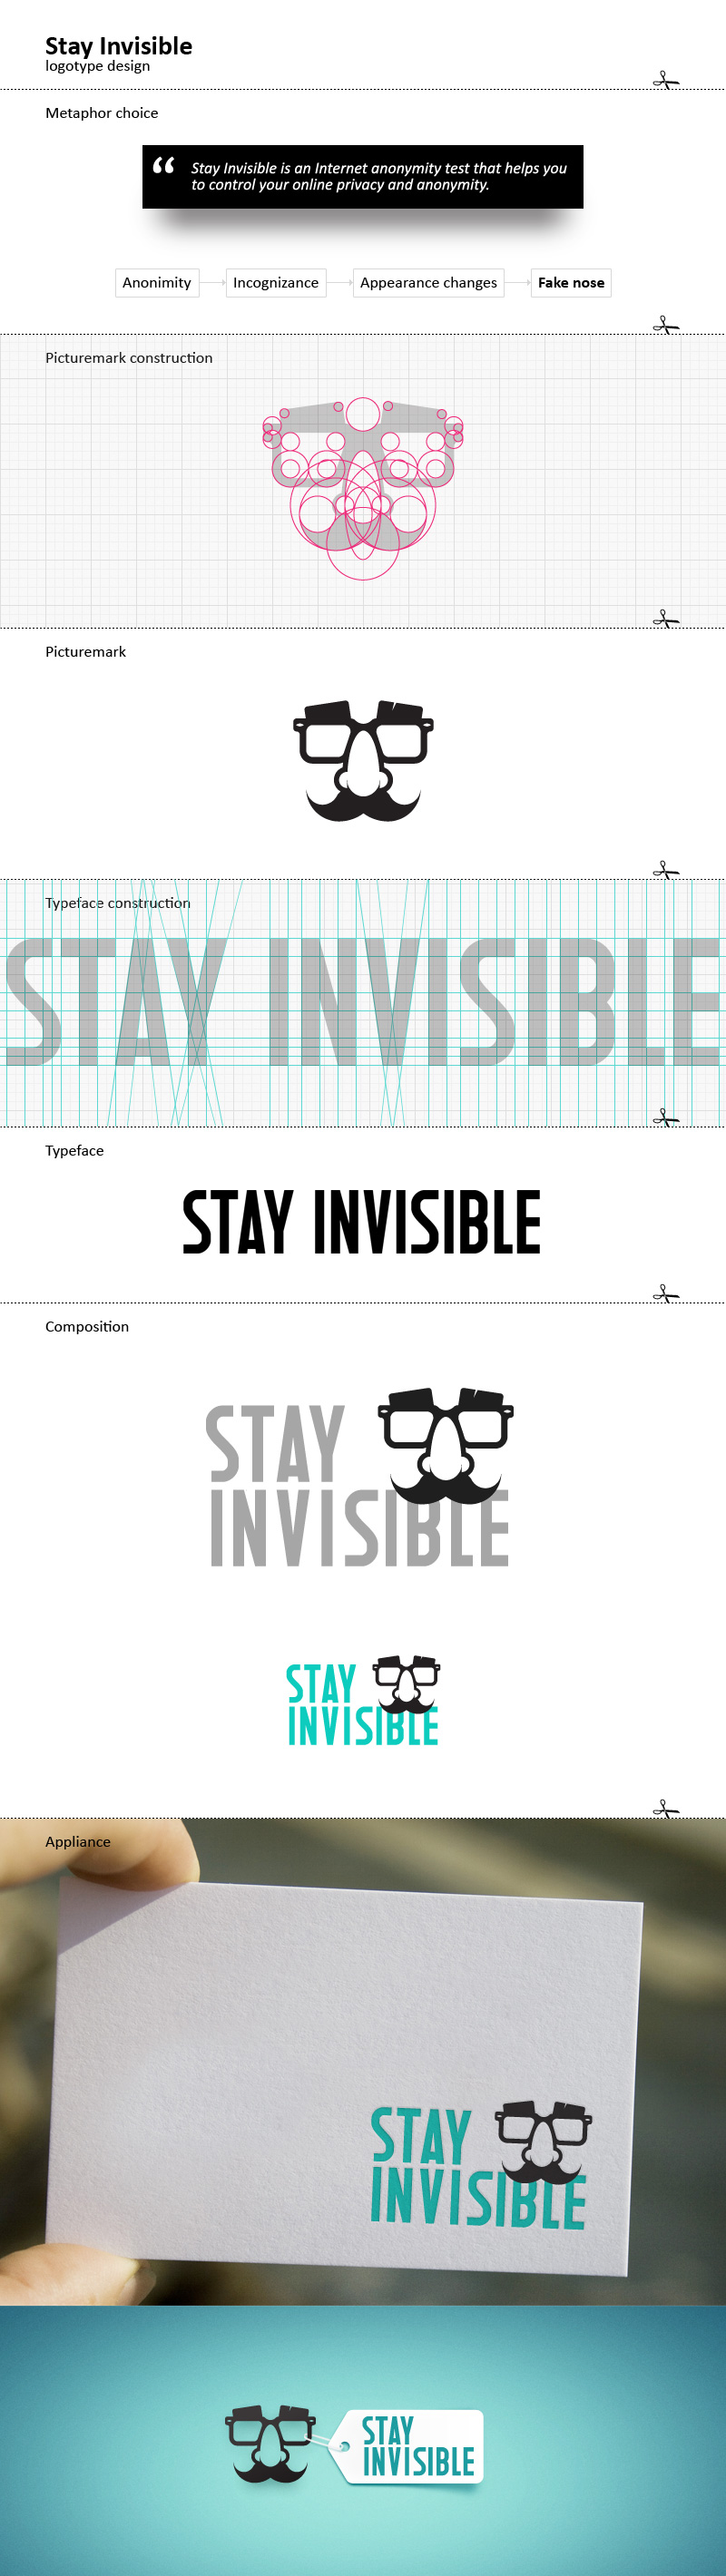 stay invisible